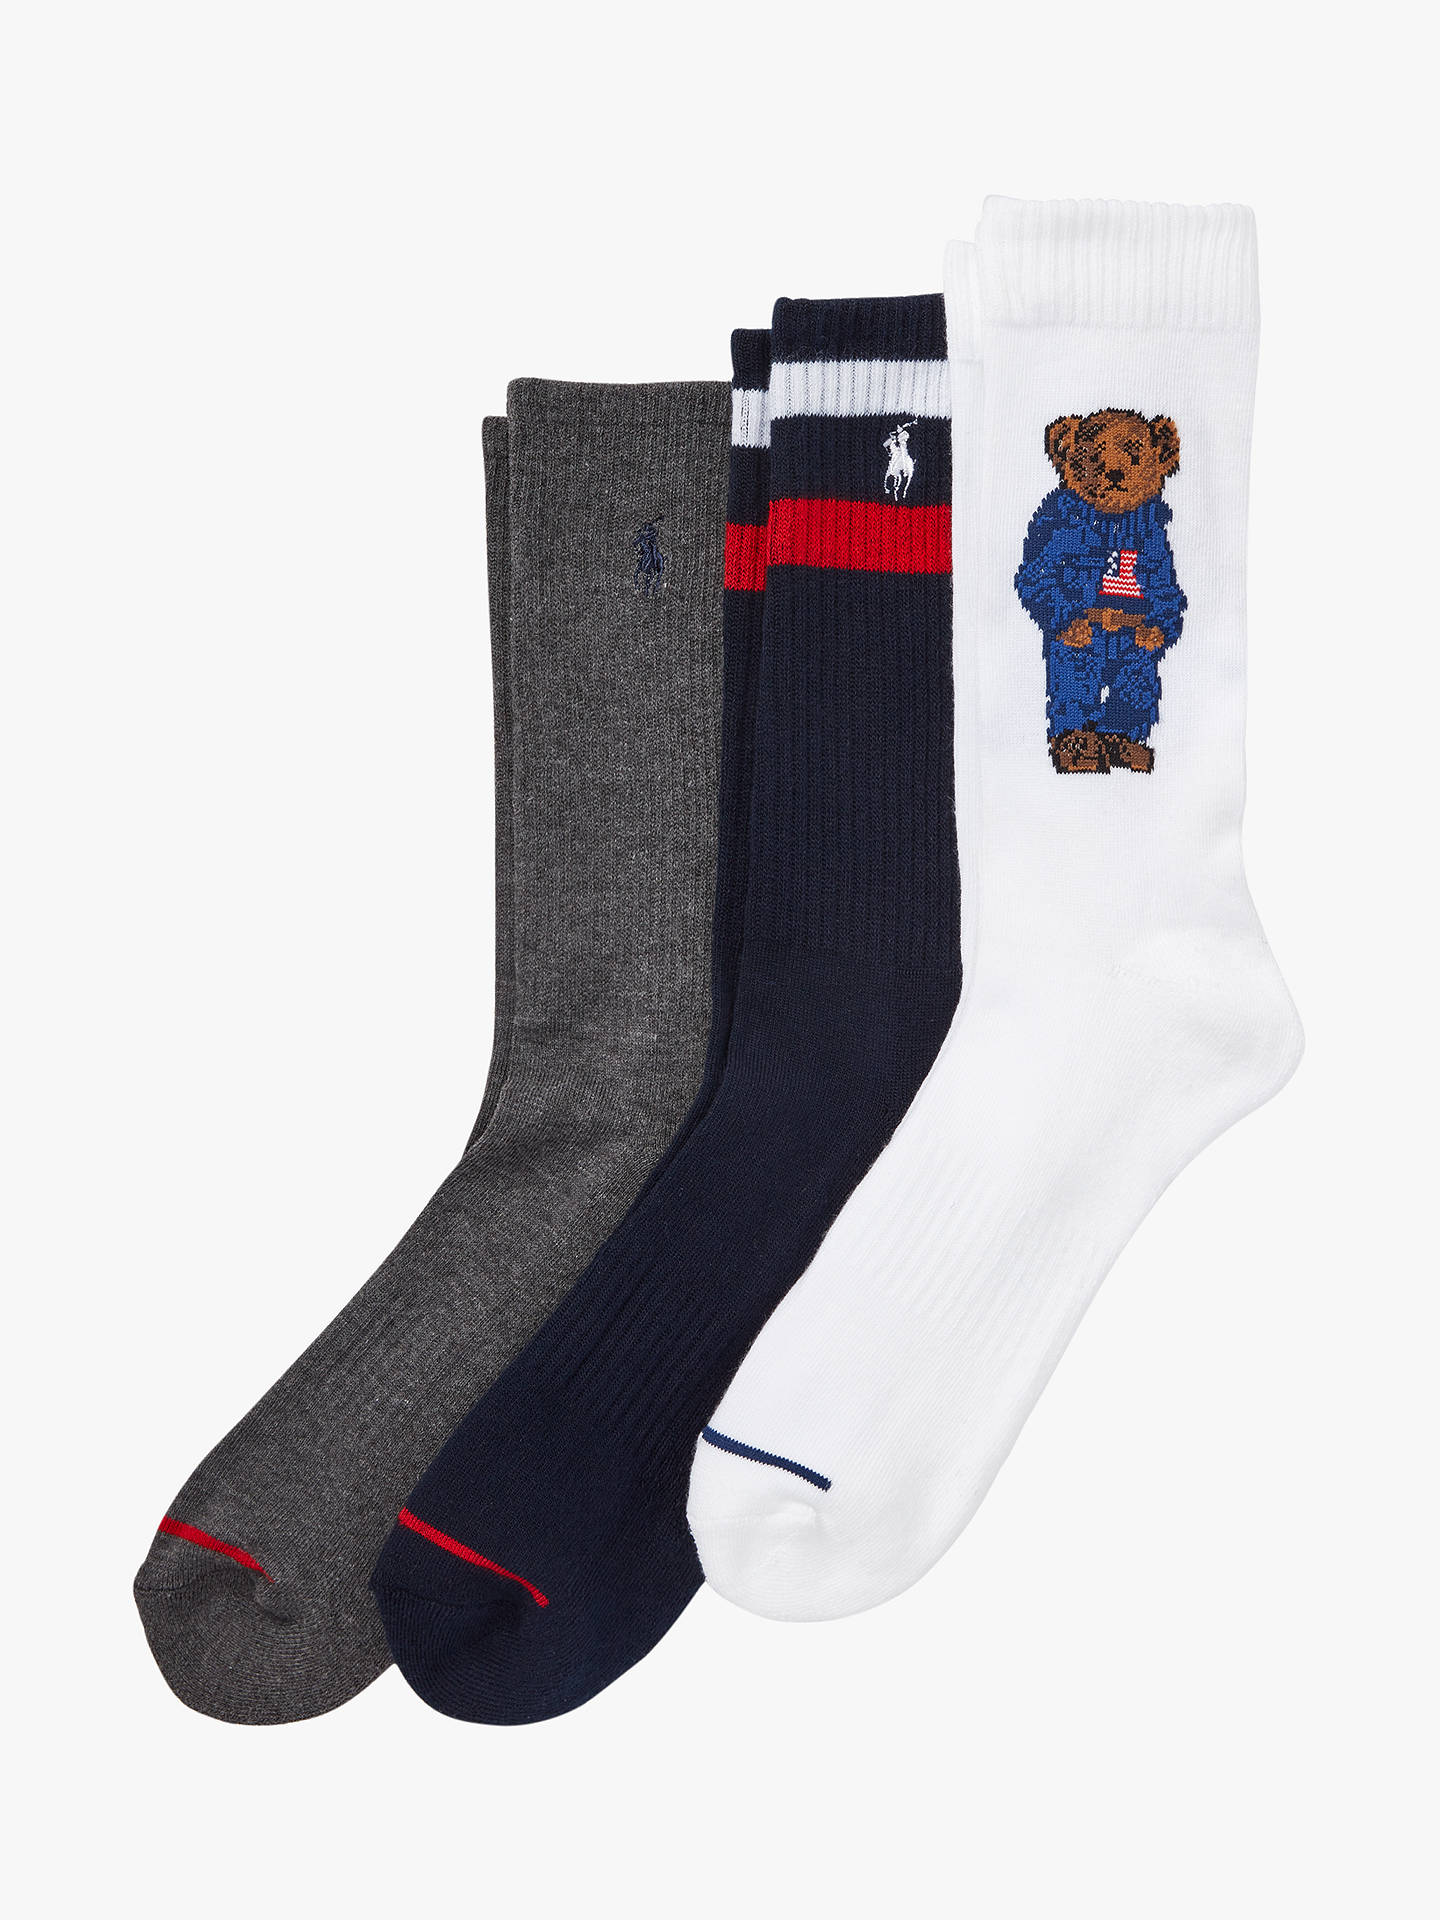 207f347ad1 Polo Ralph Lauren Bear Print Sports Crew Socks, Pack of 3, One Size,  Navy/Grey/White